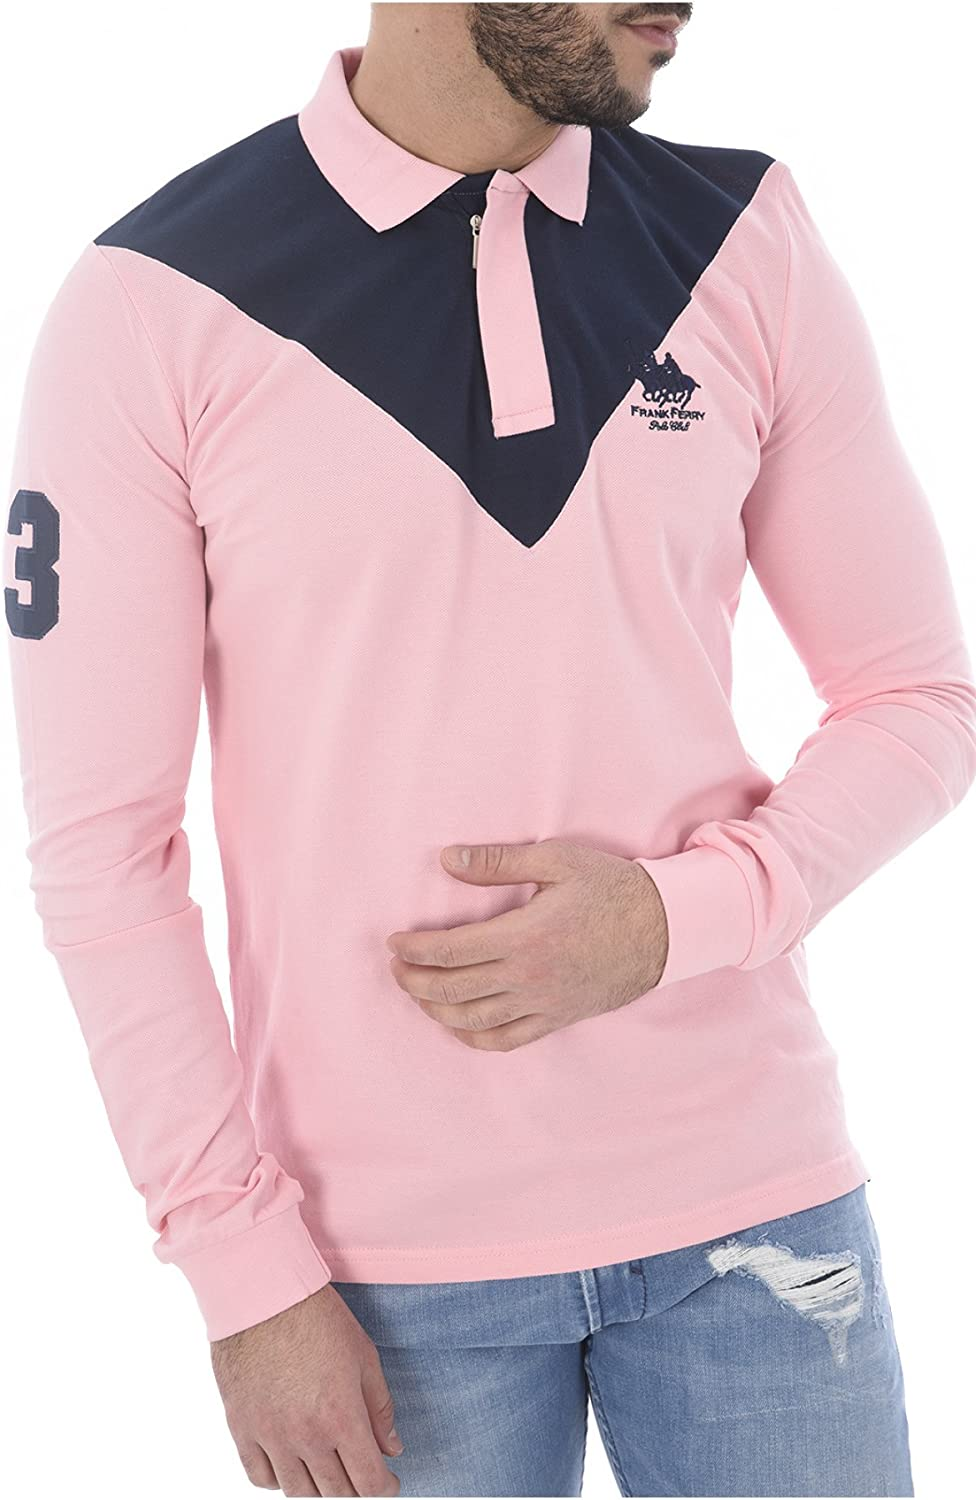 Polo manga larga (3XL): Amazon.es: Ropa y accesorios